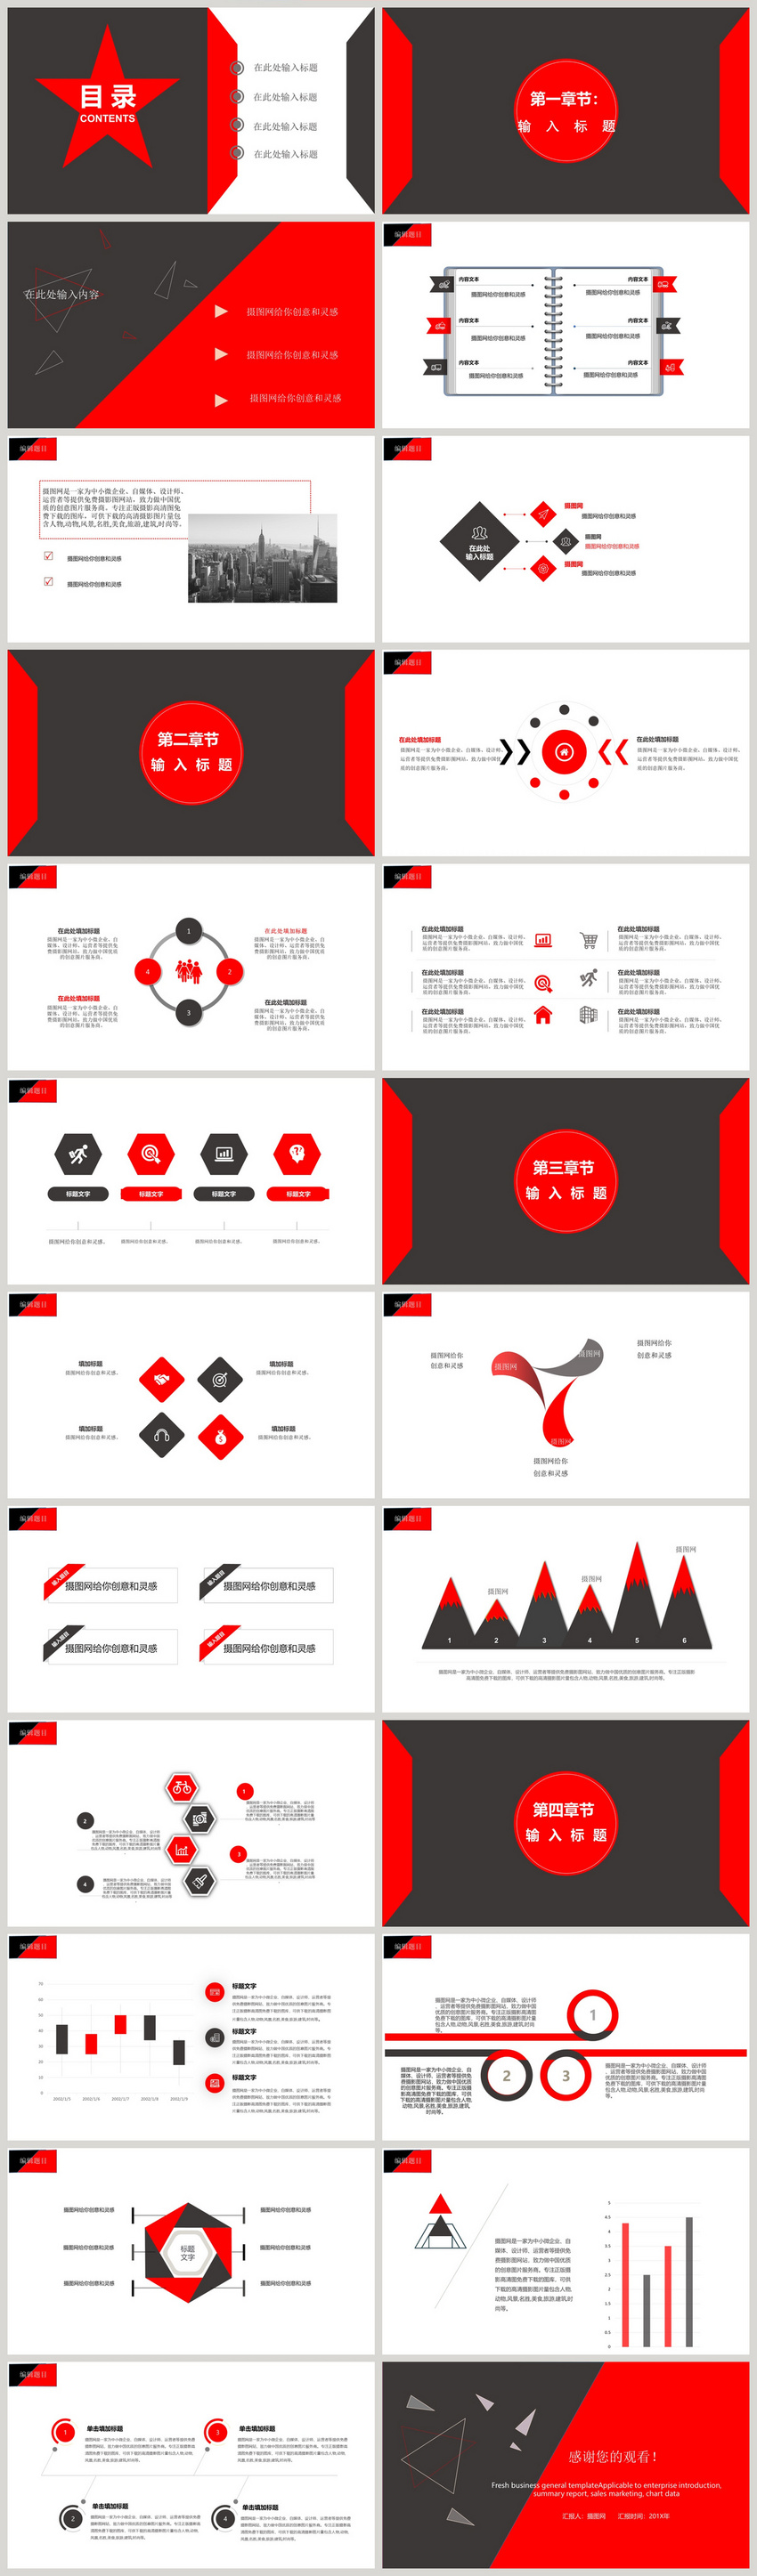 Black And Red Simple Business Plan Ppt Template Powerpoint Templete Ppt Free Download 400131030 Lovepik Com